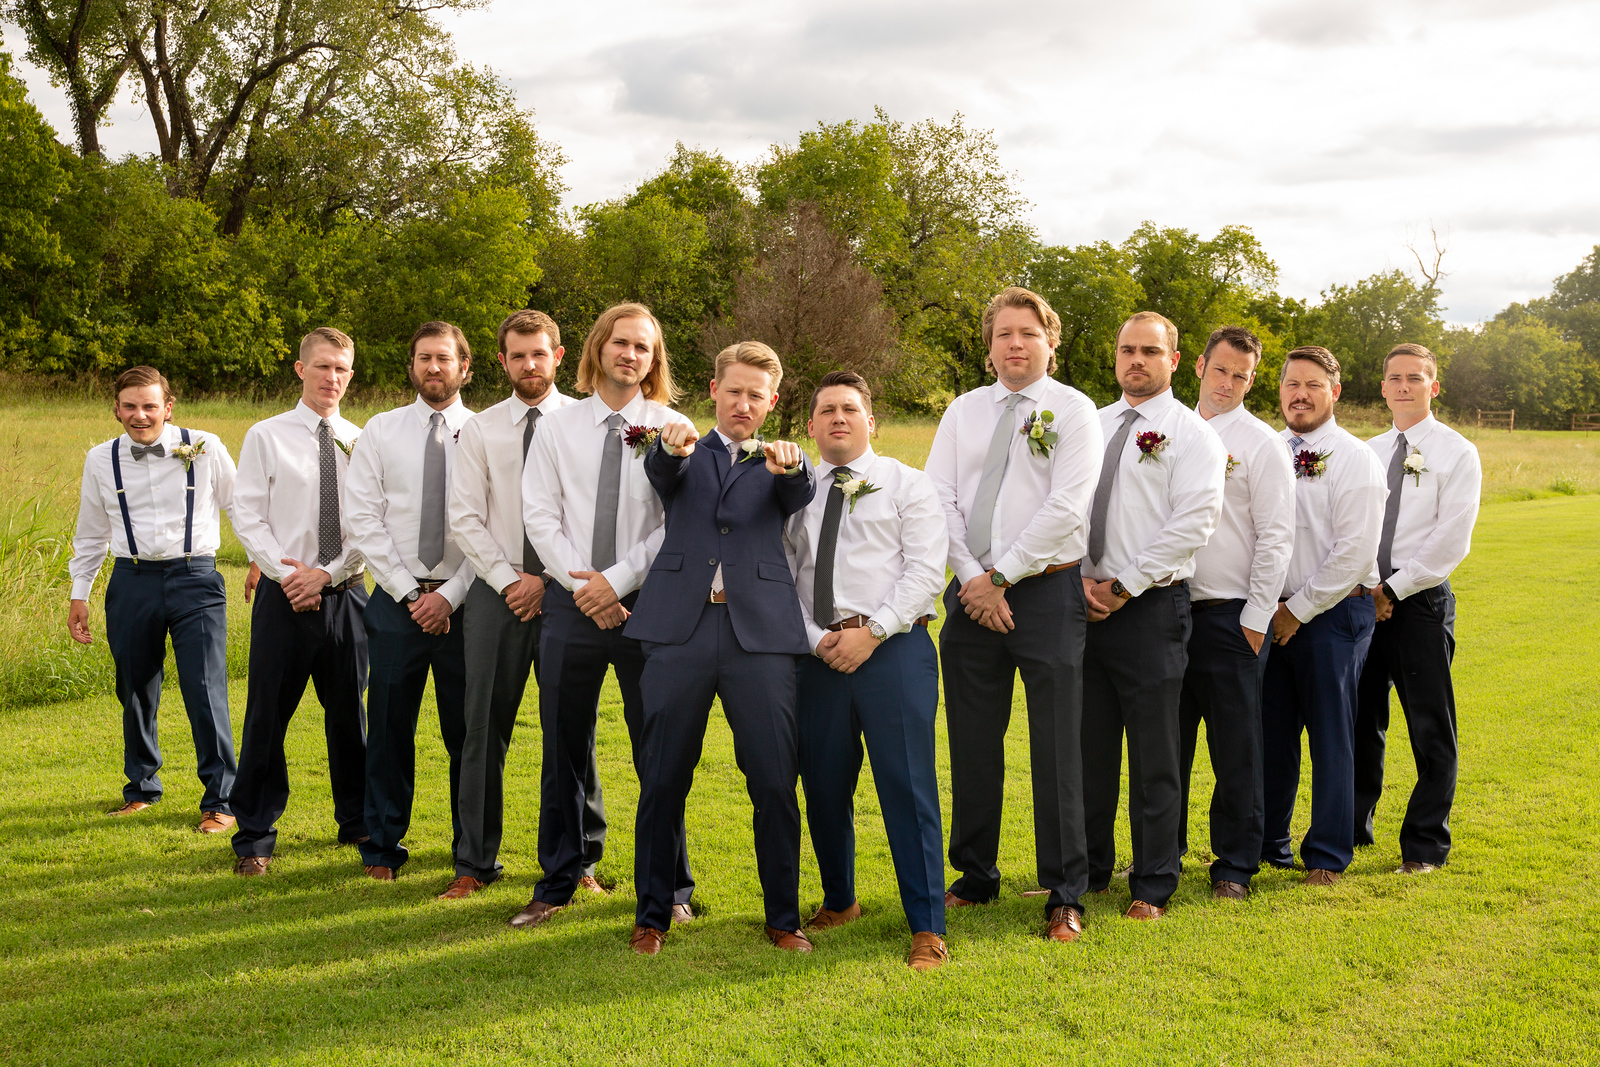 groom pointing to the camera with his ten groomsmen standing next to and behind him with serious looks on their faces